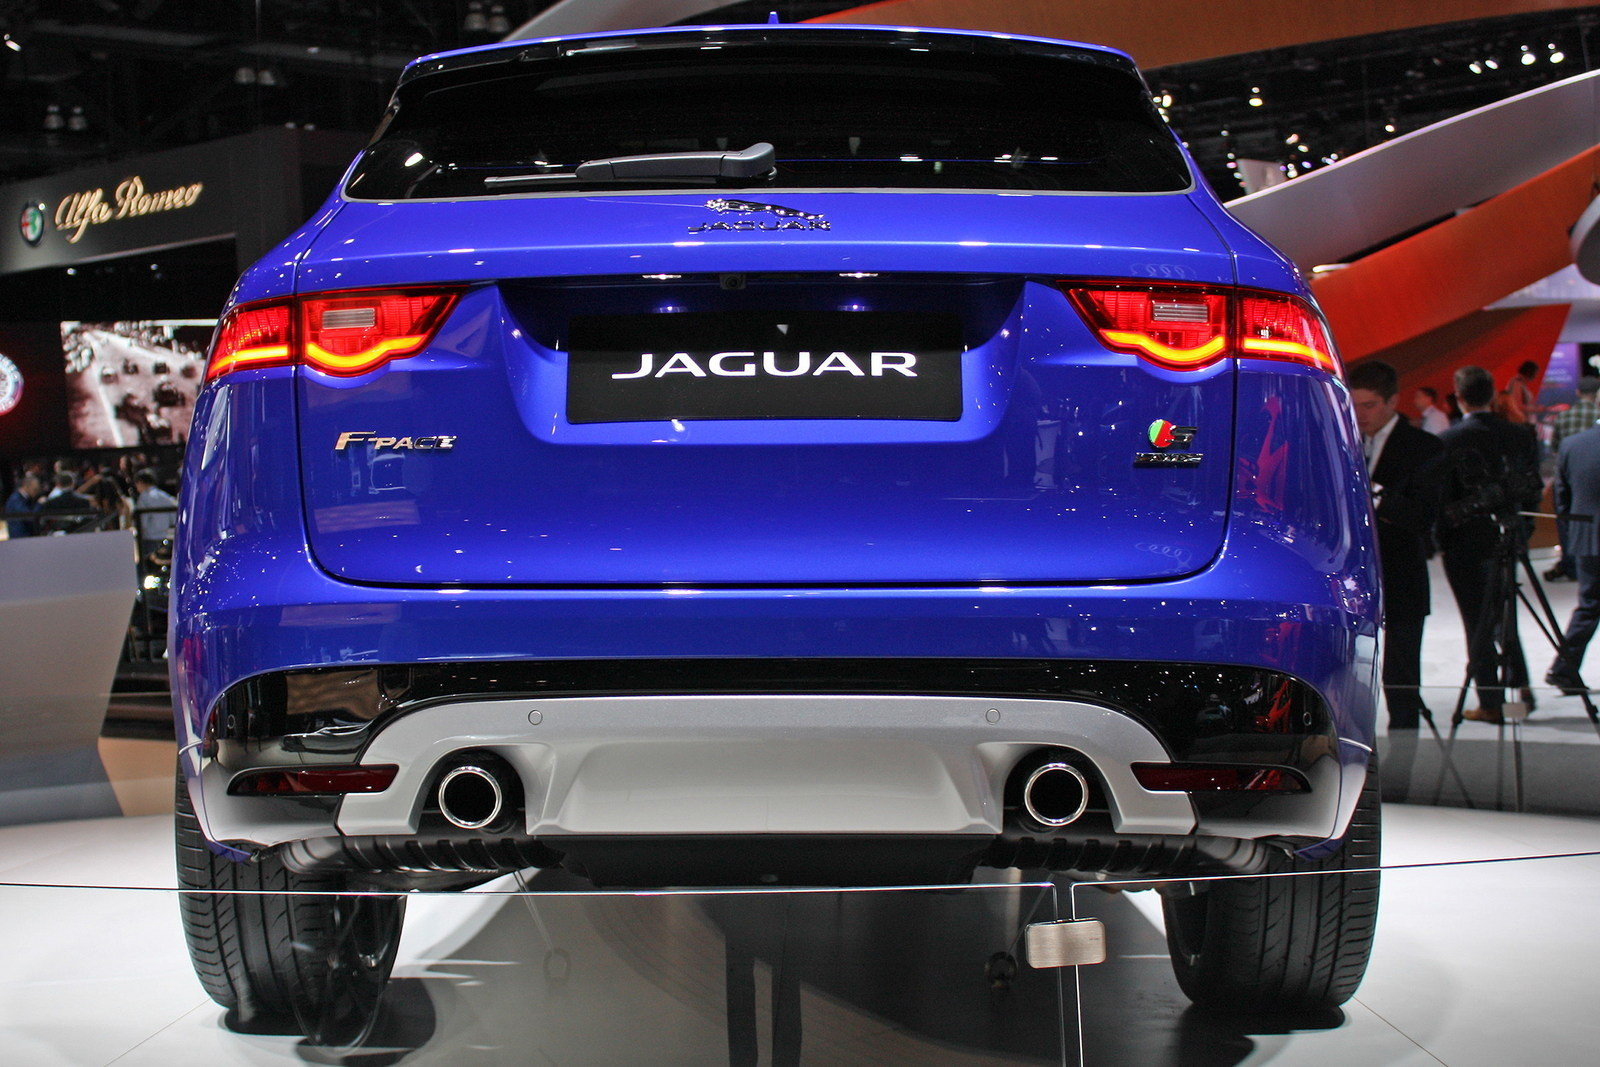 2017 jaguar f pace picture 656753 car review top speed. Black Bedroom Furniture Sets. Home Design Ideas